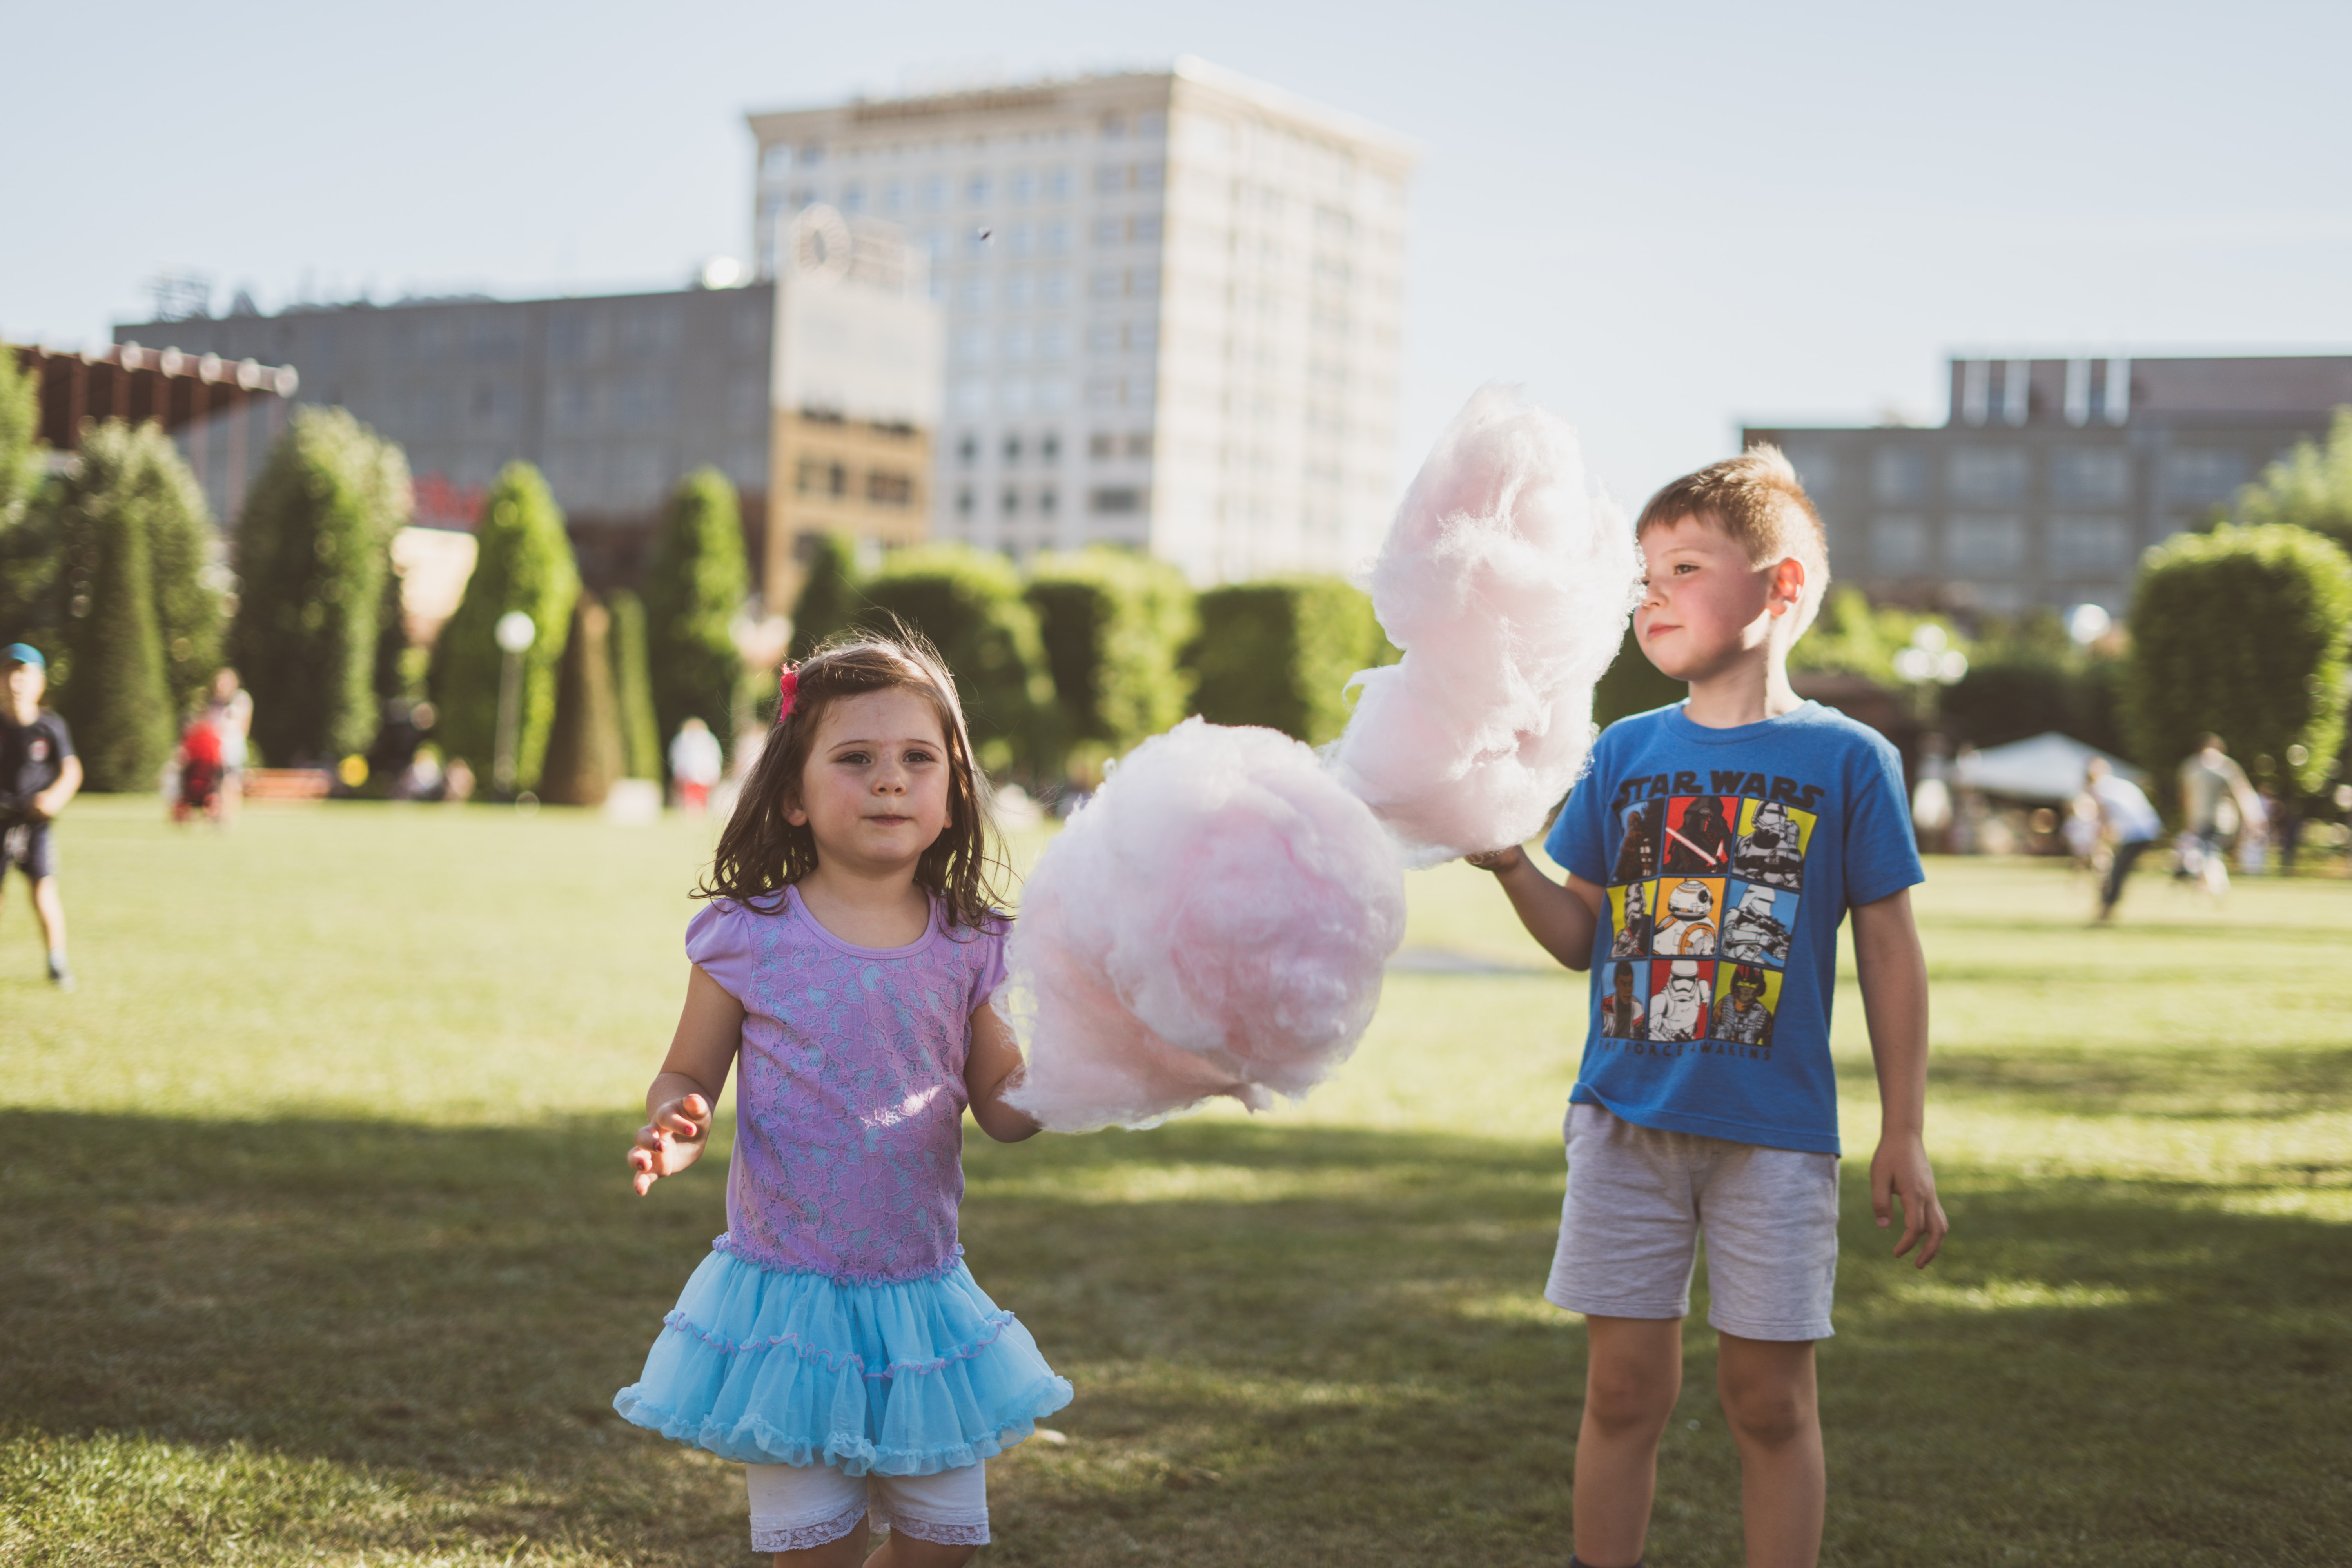 boy and girl eating cotton candies